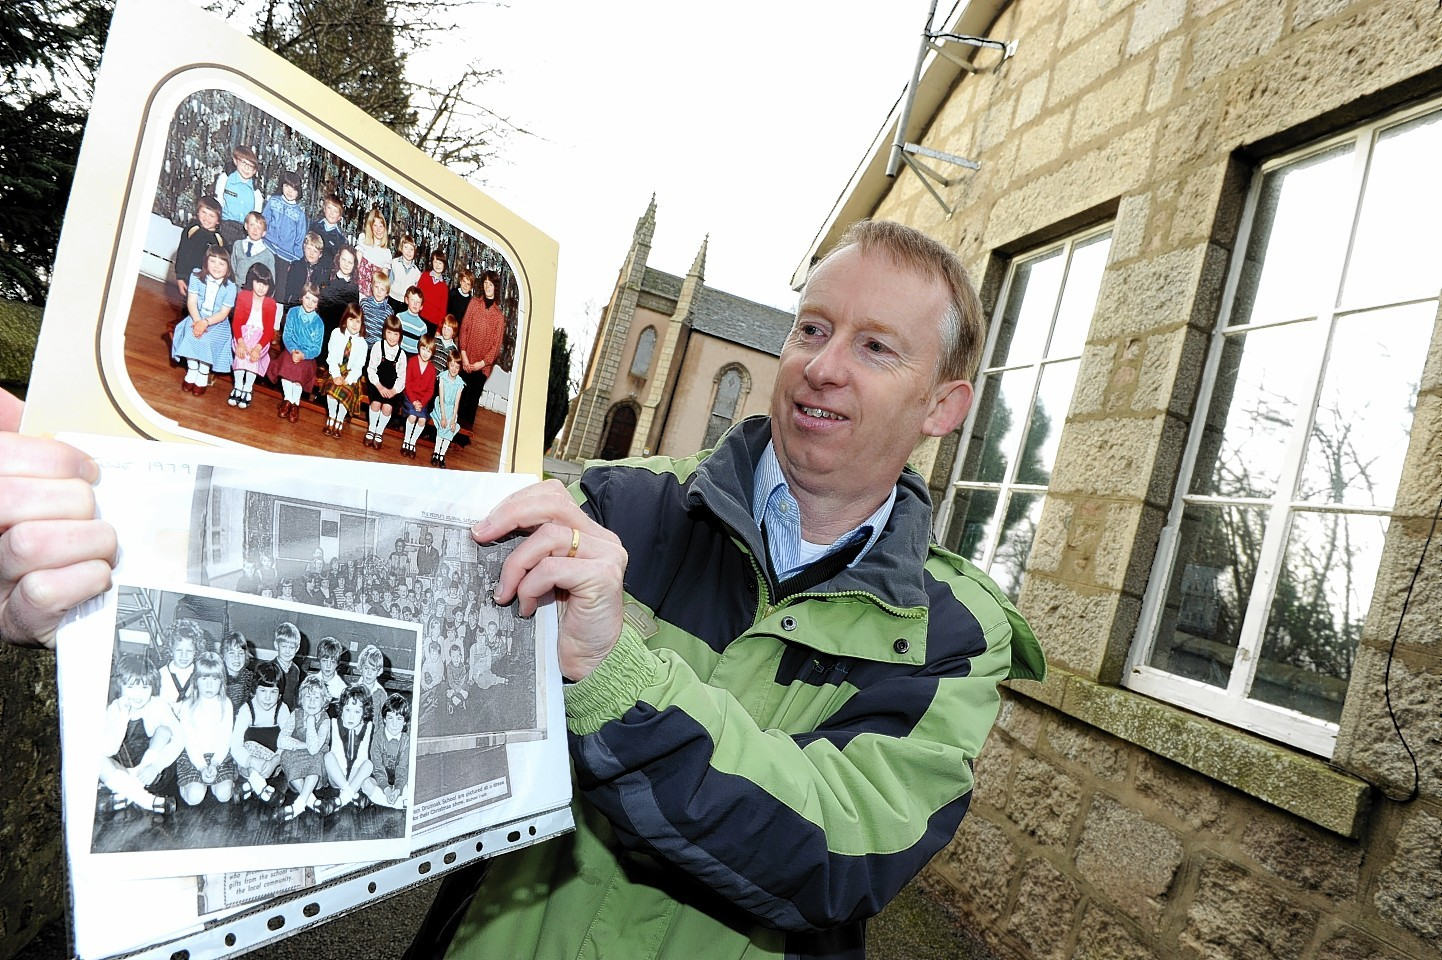 Drum Primary head teacher, Paul Wilson, at the school with some photographs